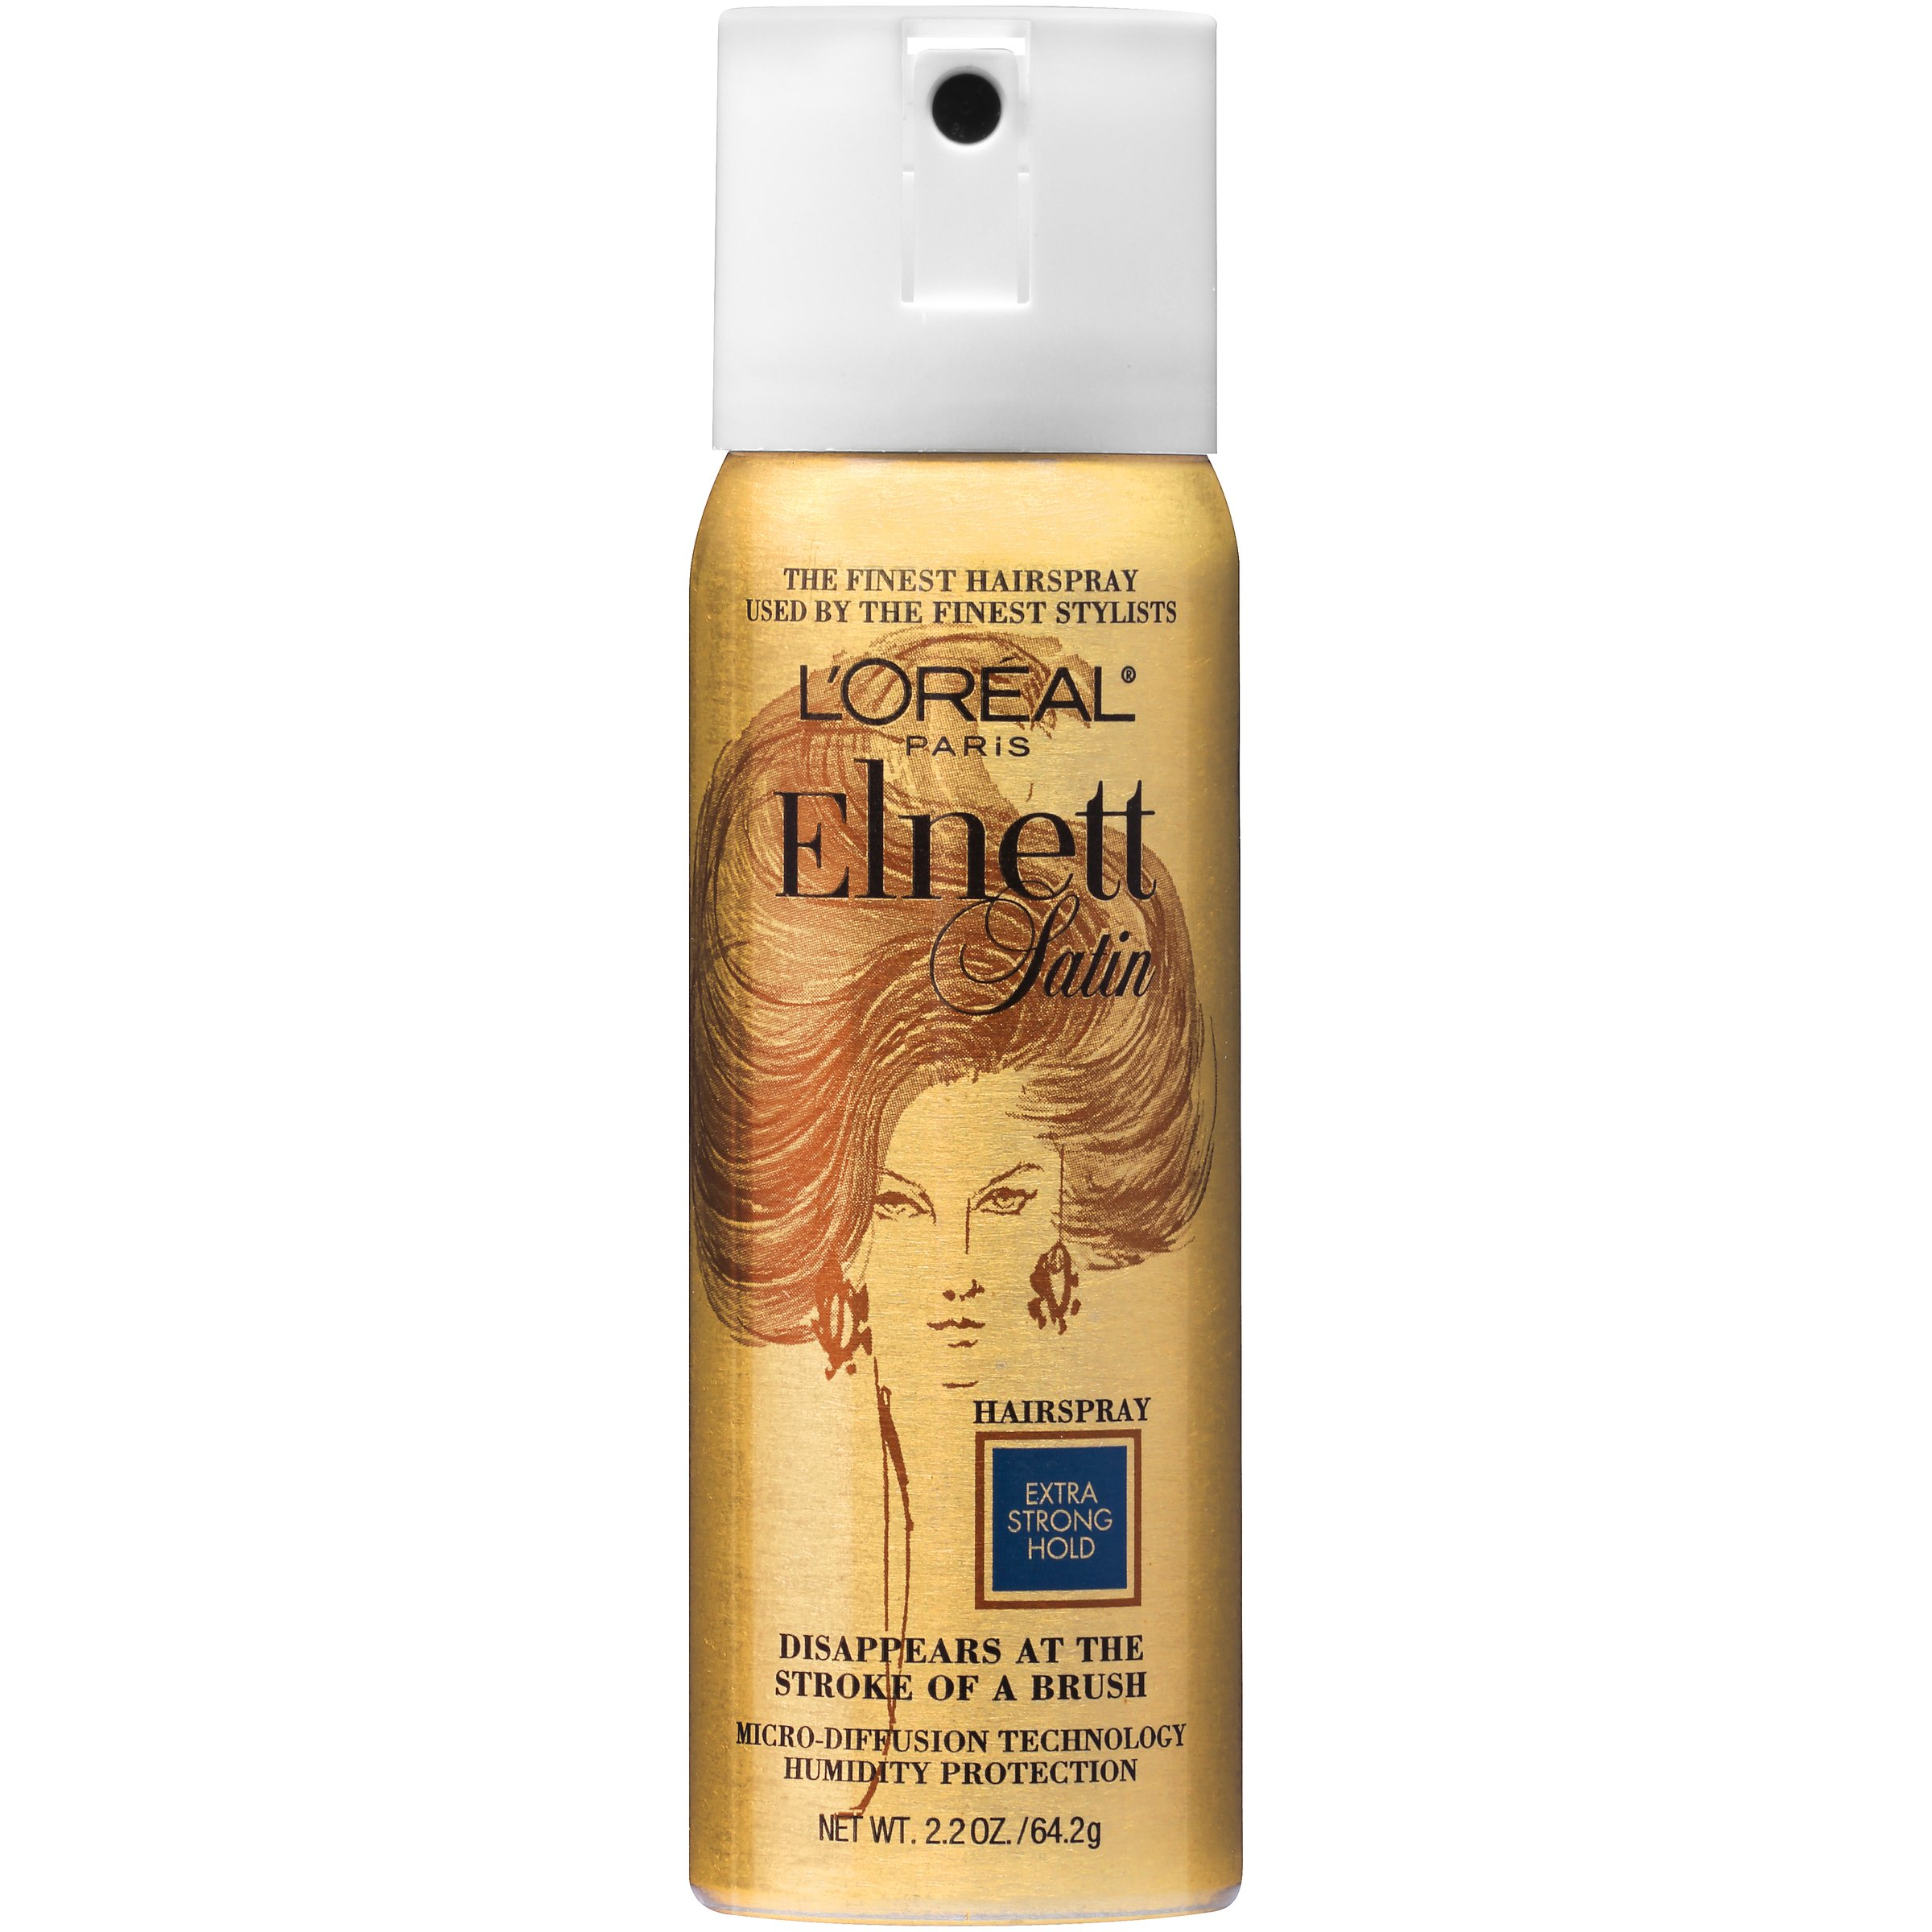 a4bec06ed89 Get Quotations · L'Oreal Paris Elnett Satin Hairspray Extra Strong Hold  (Travel Size), 2.2